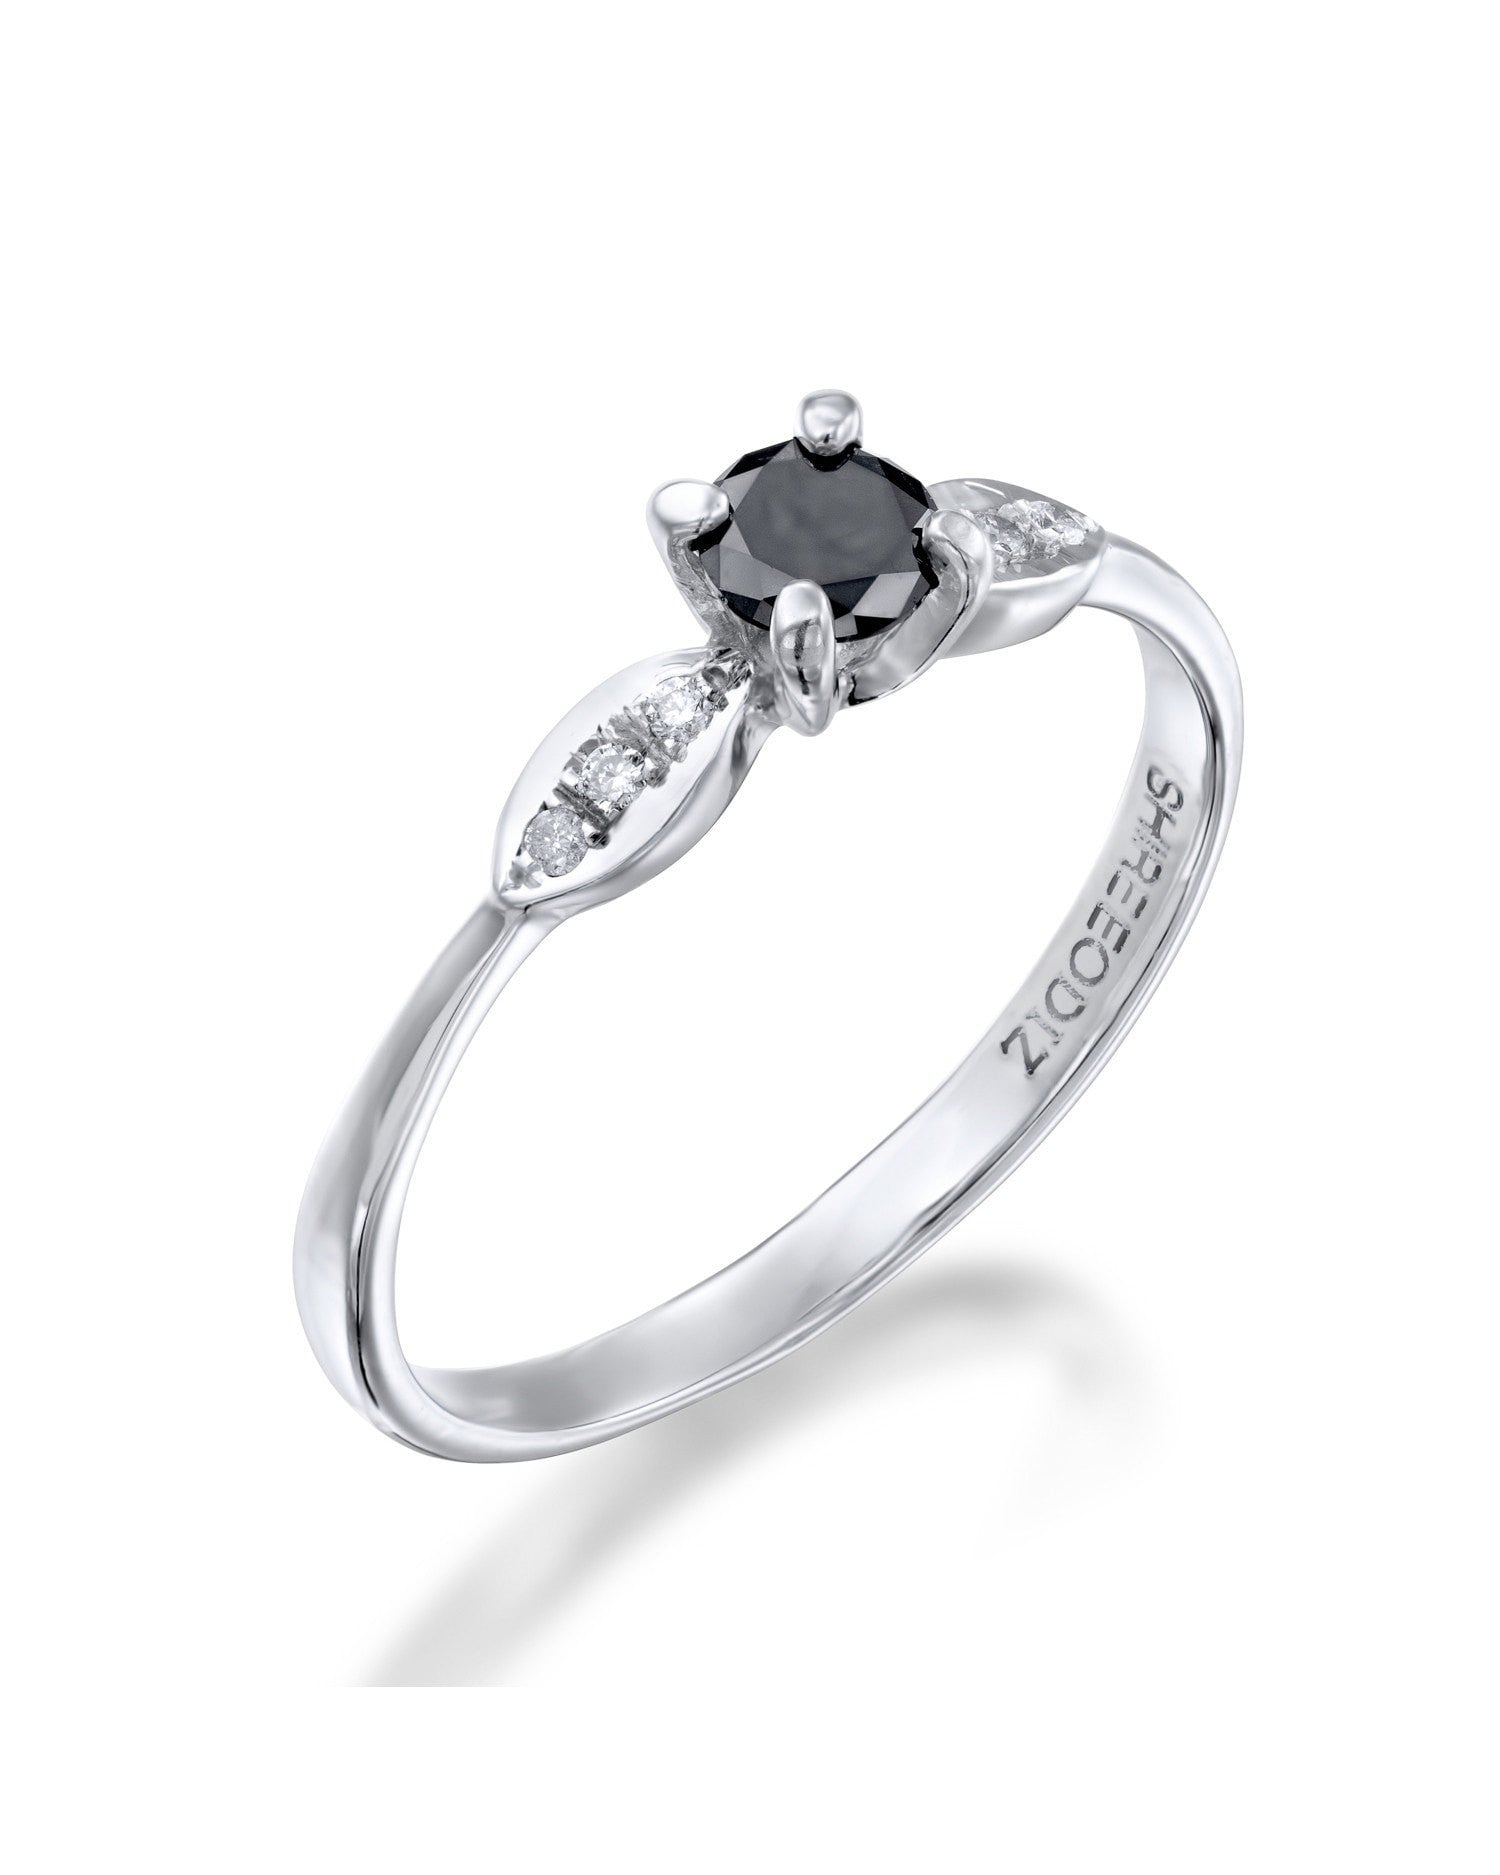 Engagement Rings Black Diamond Thin 4prong Vintage Delicate Ring 050ct: Delicate Vintage Wedding Rings At Websimilar.org